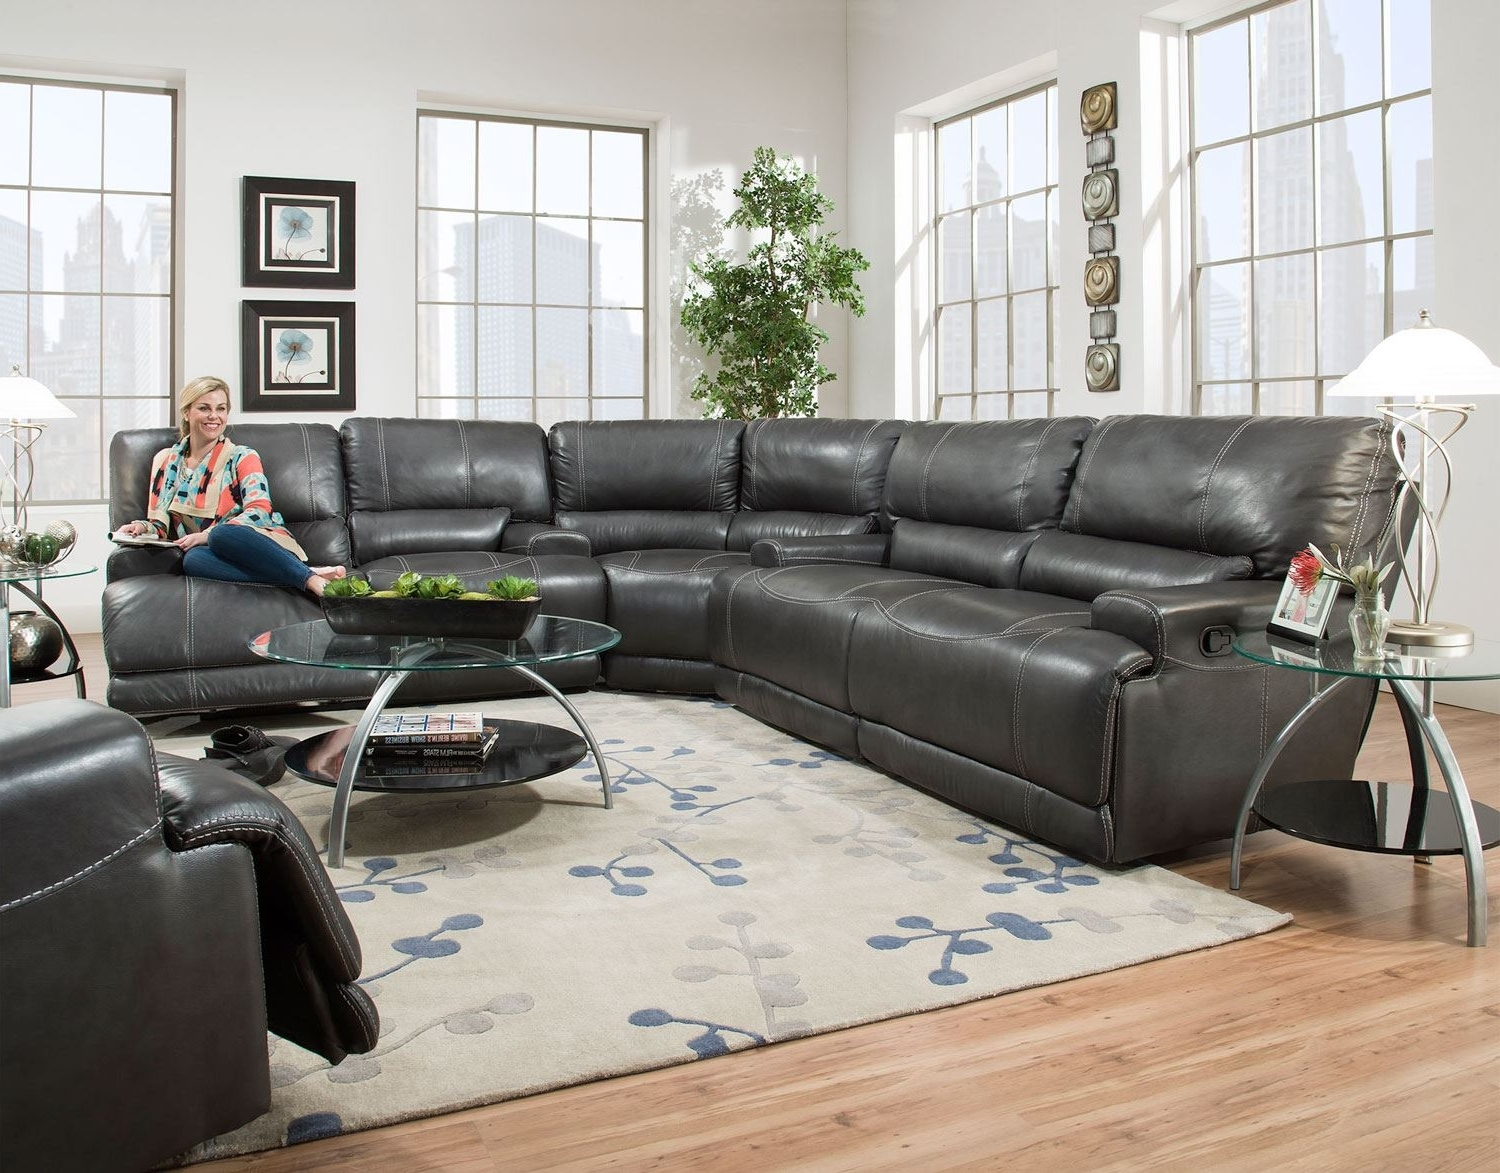 Couches With Large Ottoman In Preferred Reclining Sectional Leather Sectional Grey Sectional Sectionals (View 19 of 20)